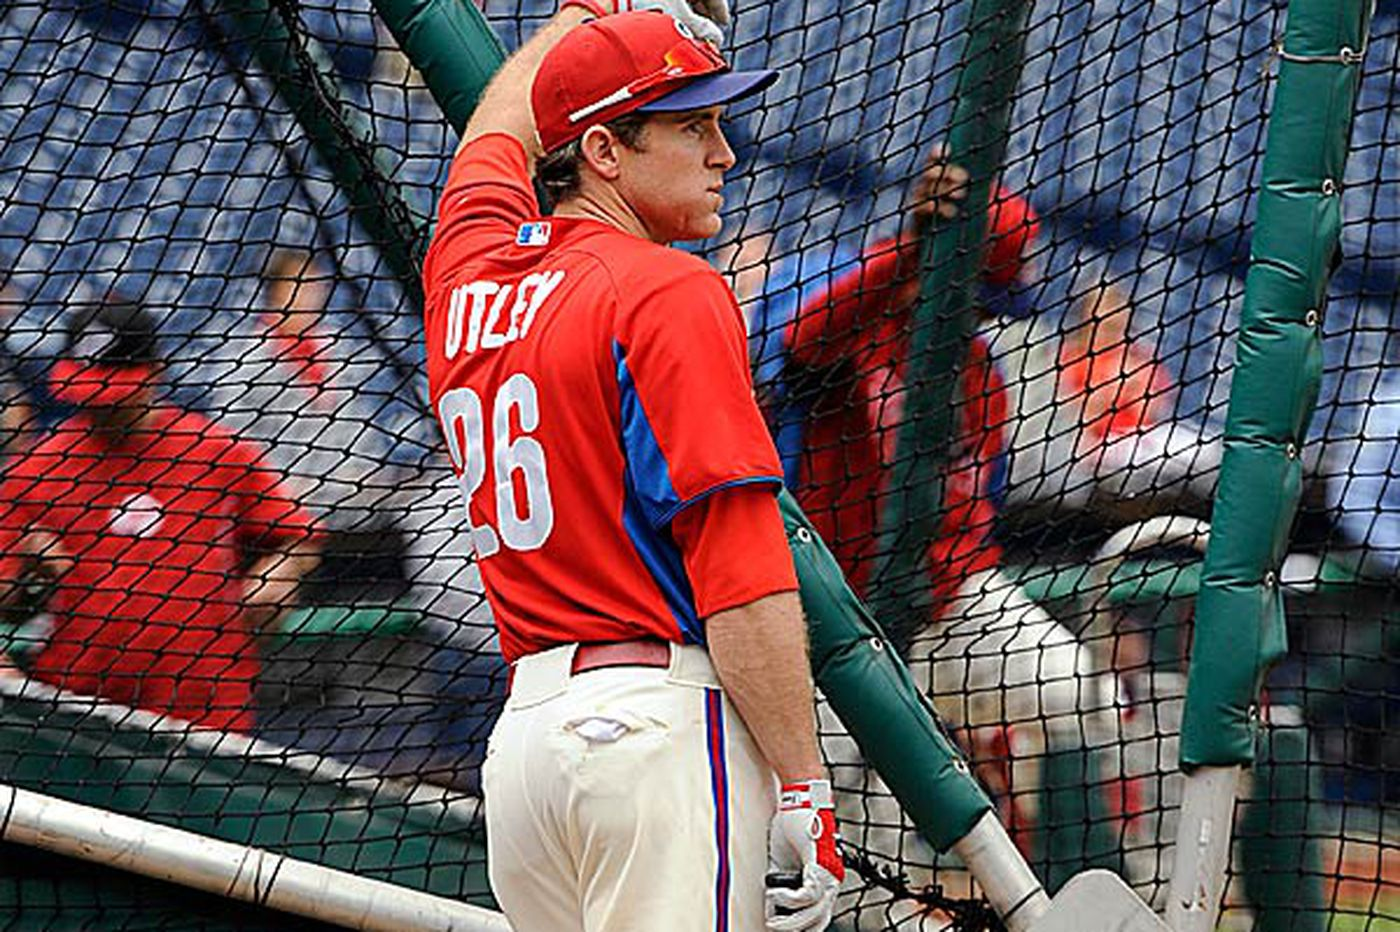 Phillies Notes: Utley takes some swings; no batting practice yet